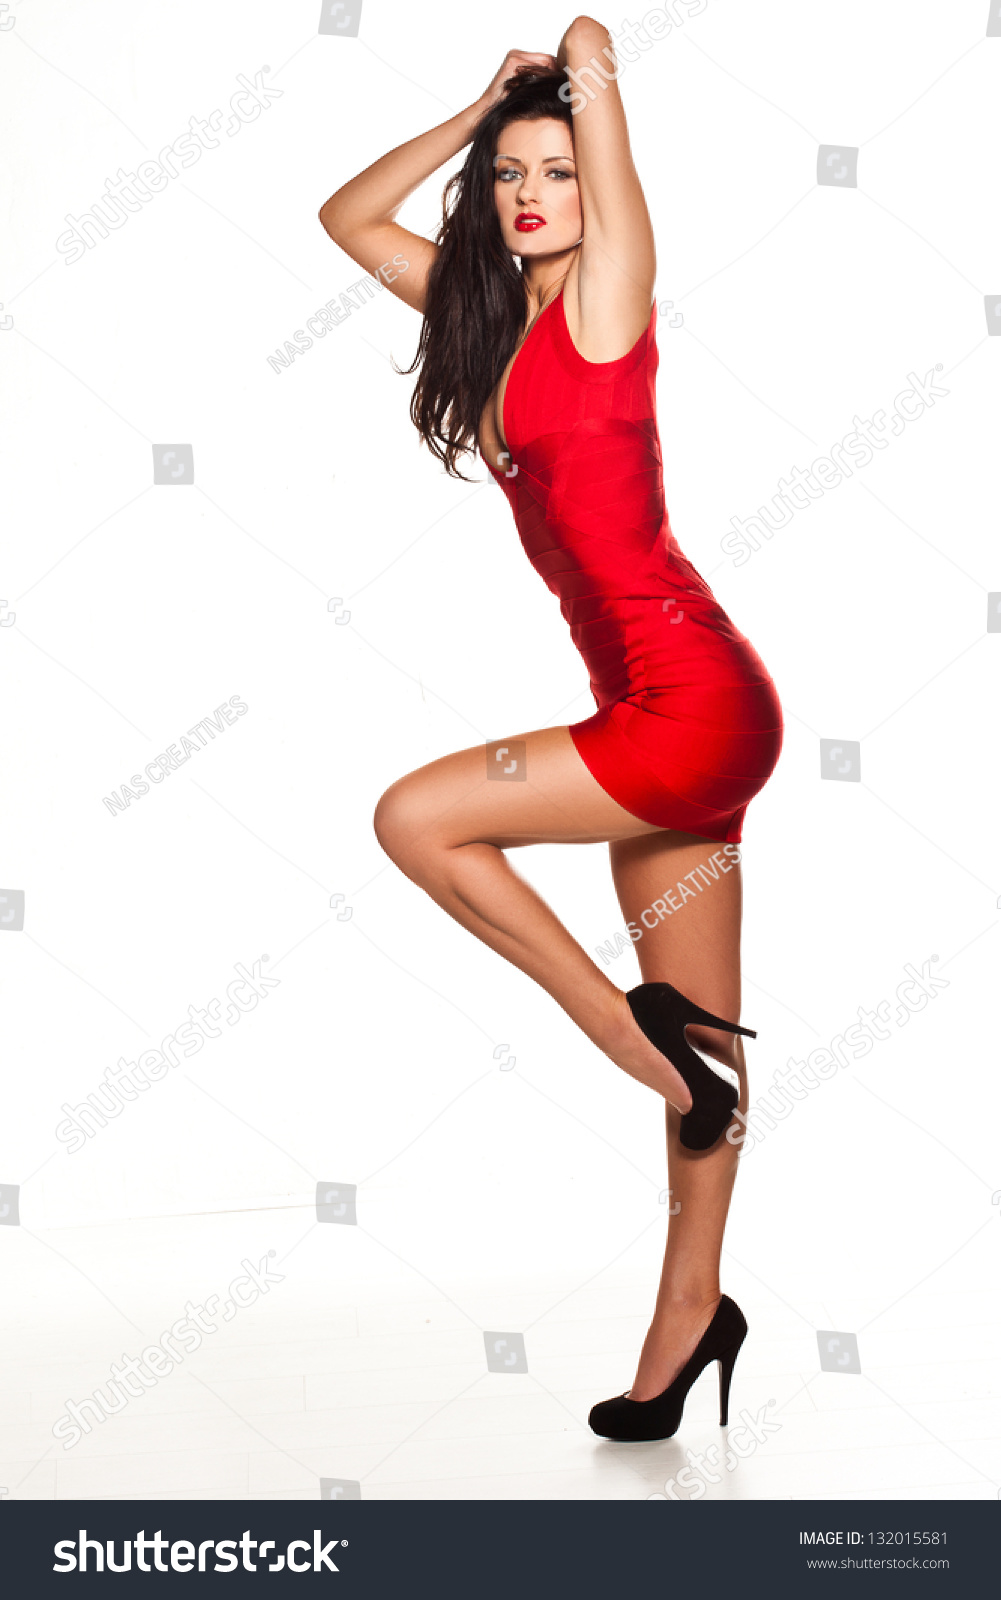 Beautiful Sexy Woman Wearing Red Dress Stock Photo 132015581 ...